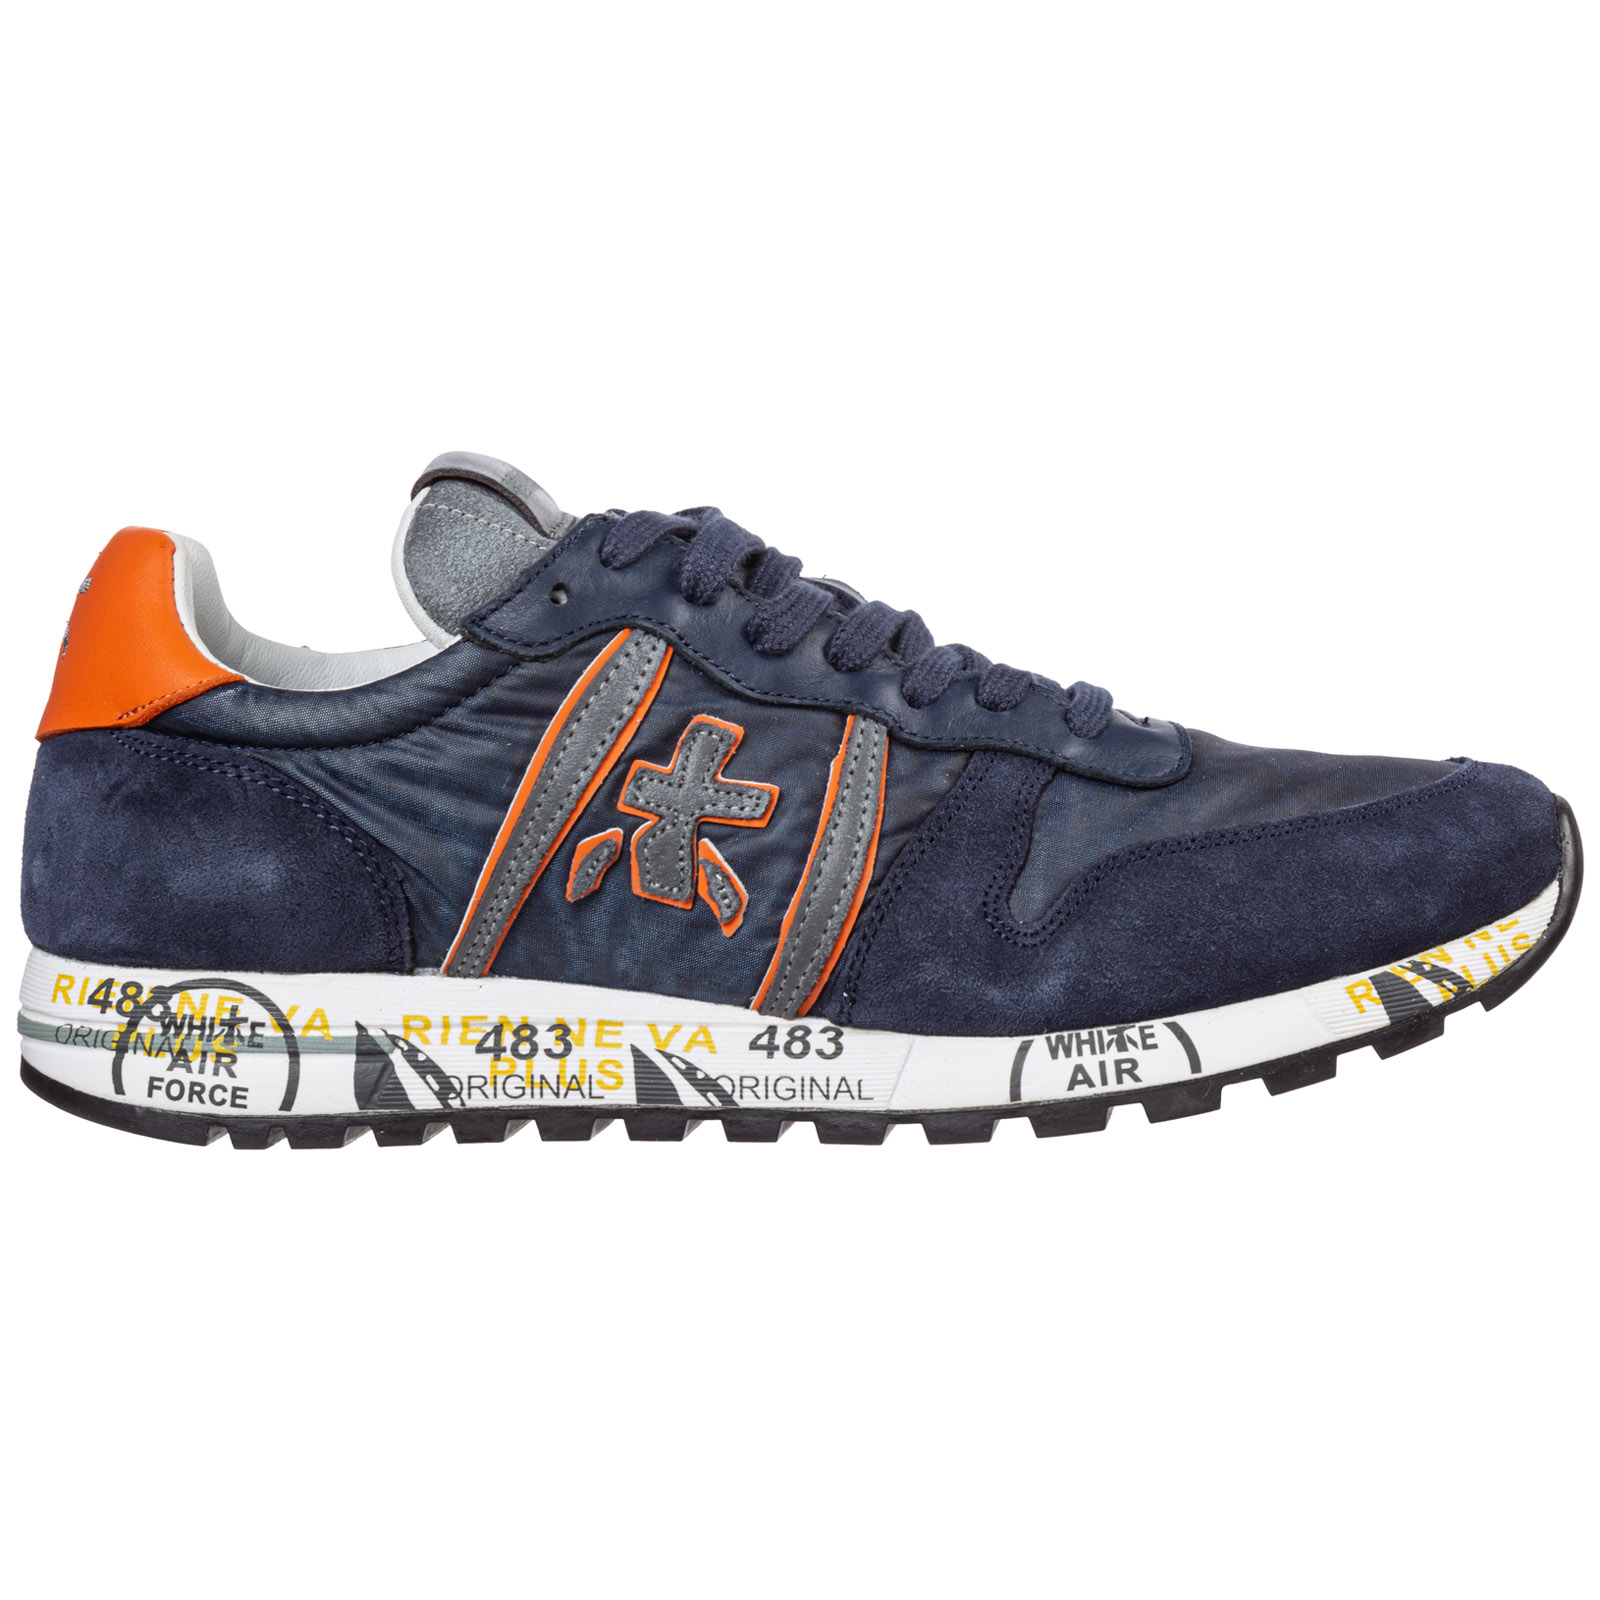 Premiata Sneakers MEN'S SHOES SUEDE TRAINERS SNEAKERS ERIC